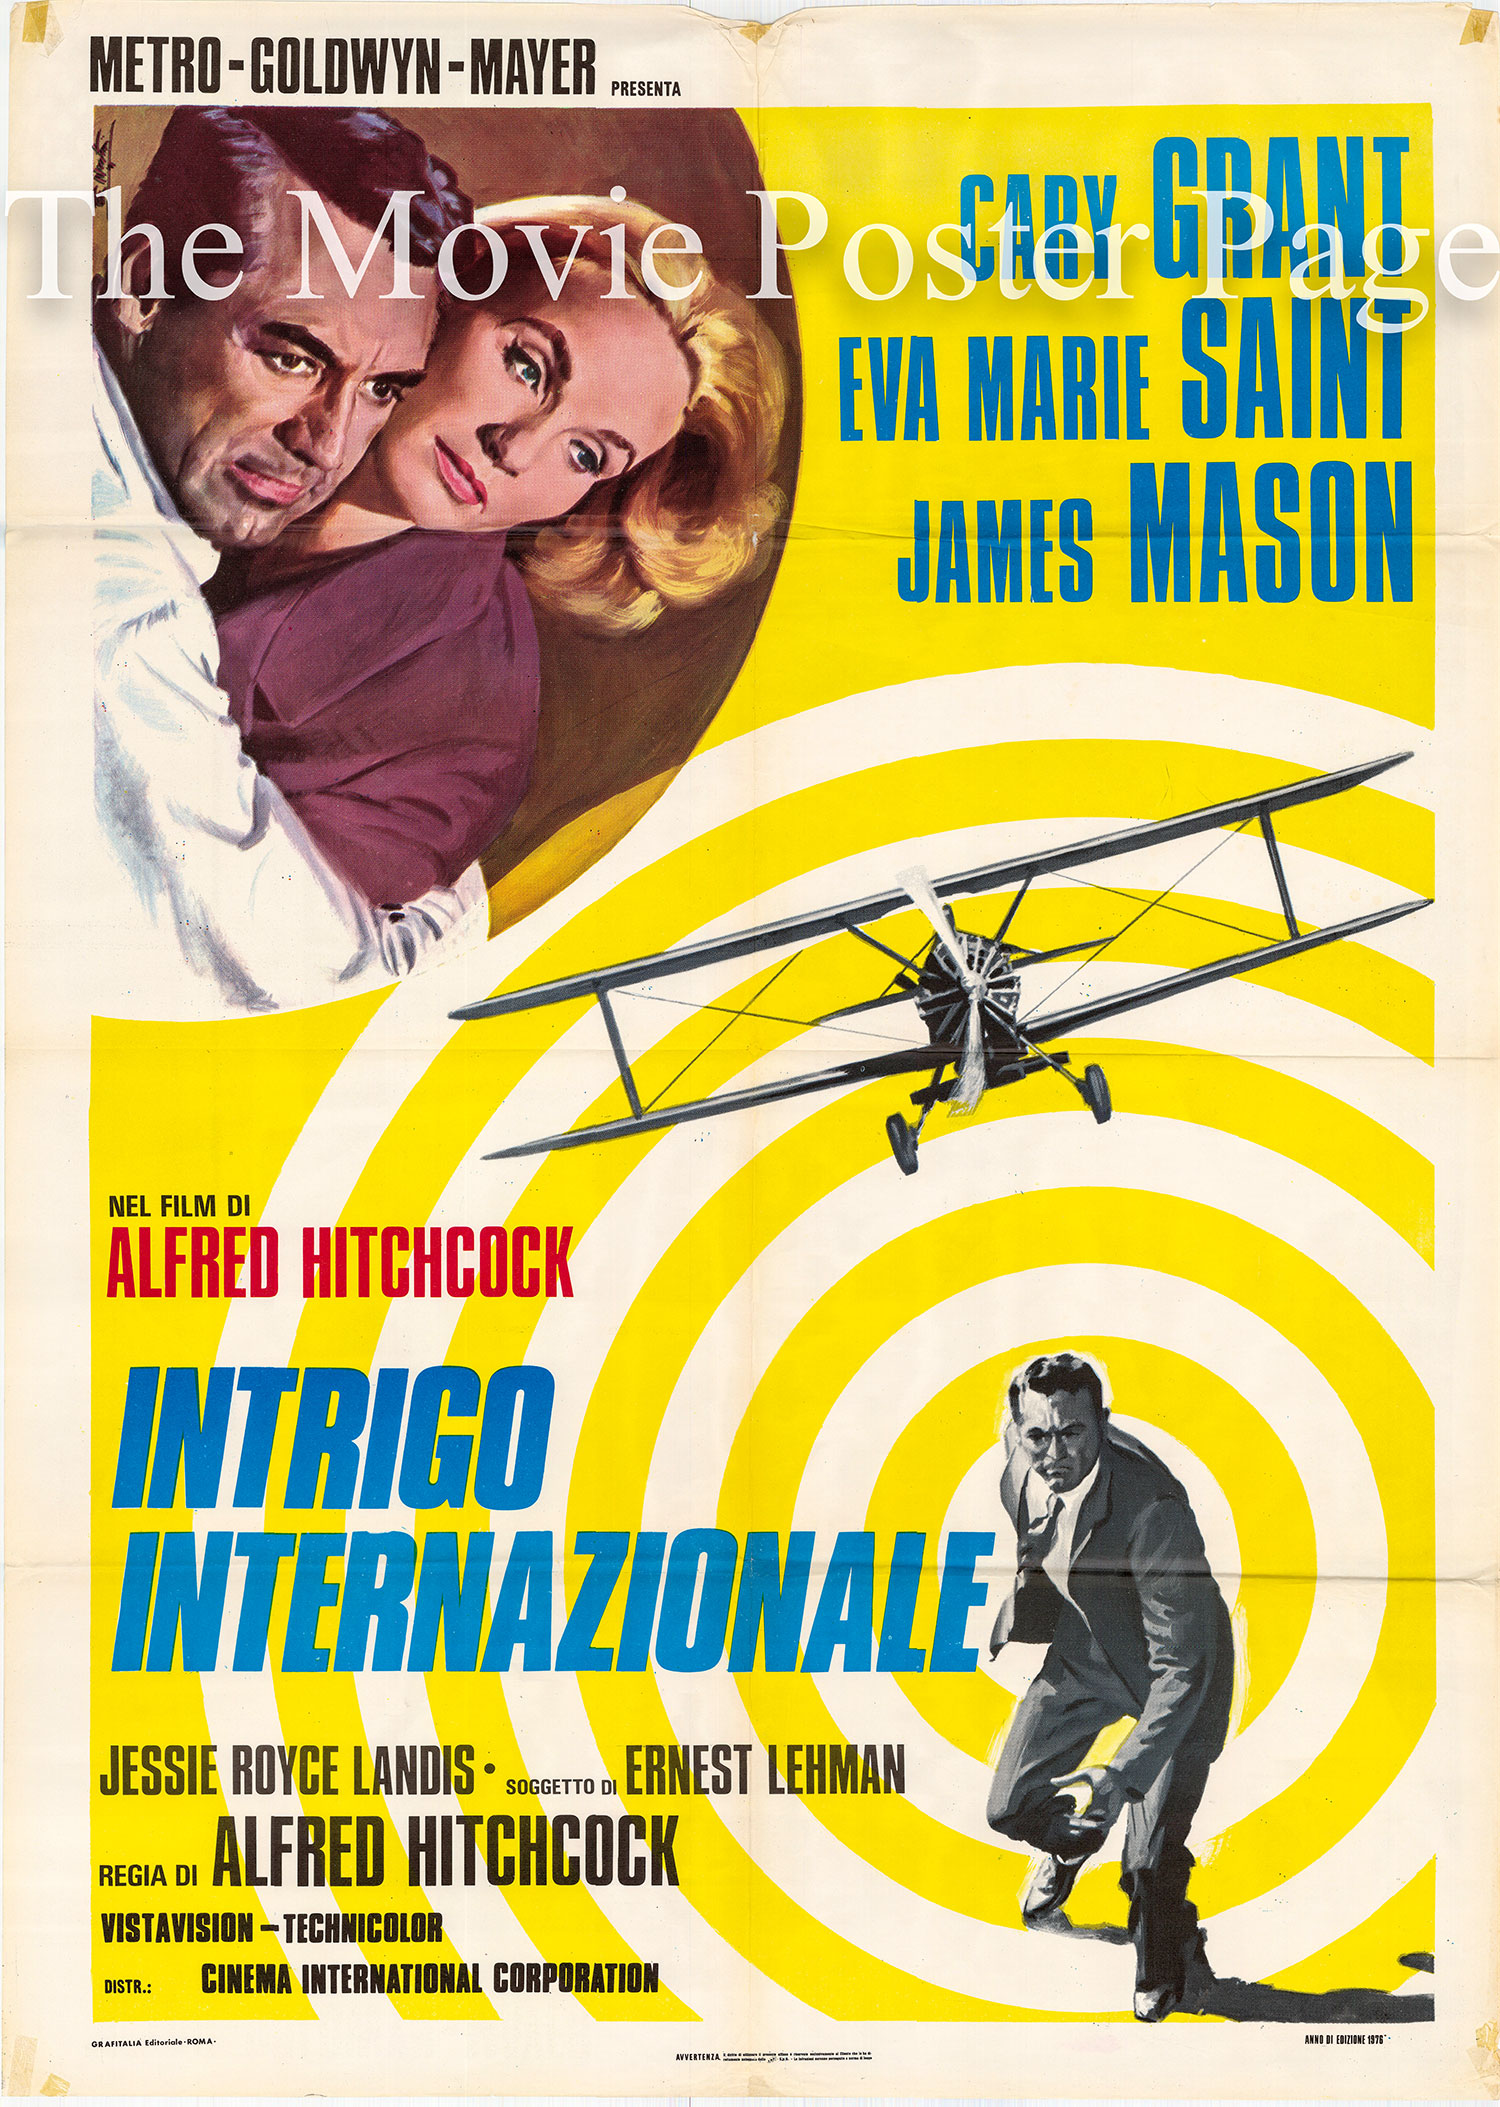 Pictured is an Italian two-sheet poster for a 1976 rerelease of the 1959 Alfred Hitchcock film North by Northwest starring Cary Grant.